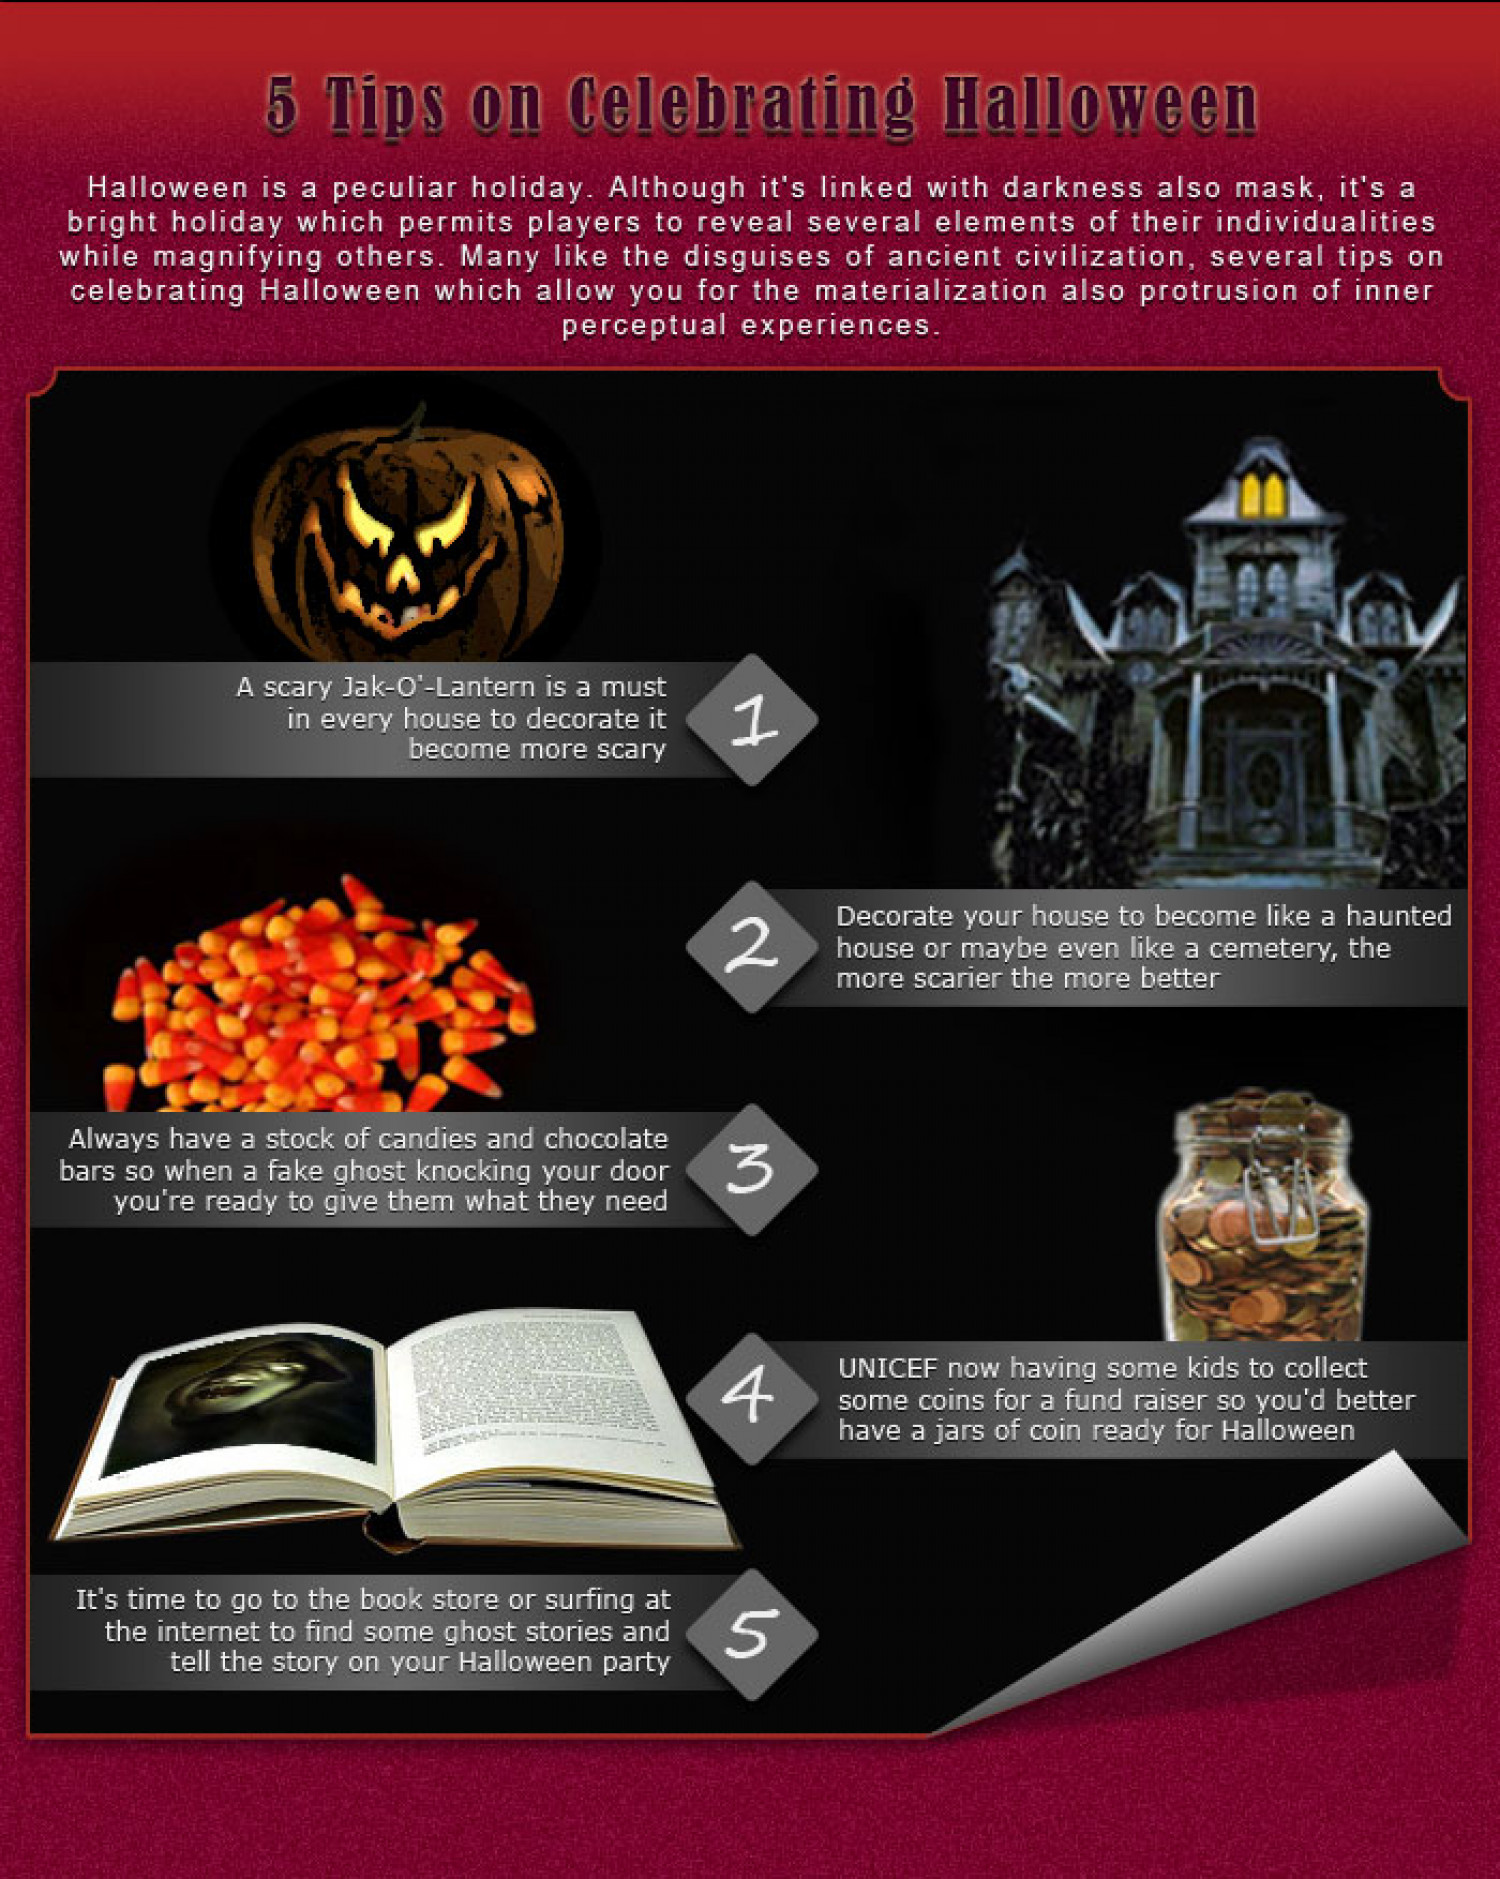 5 Tips on Celebrating Halloween Infographic